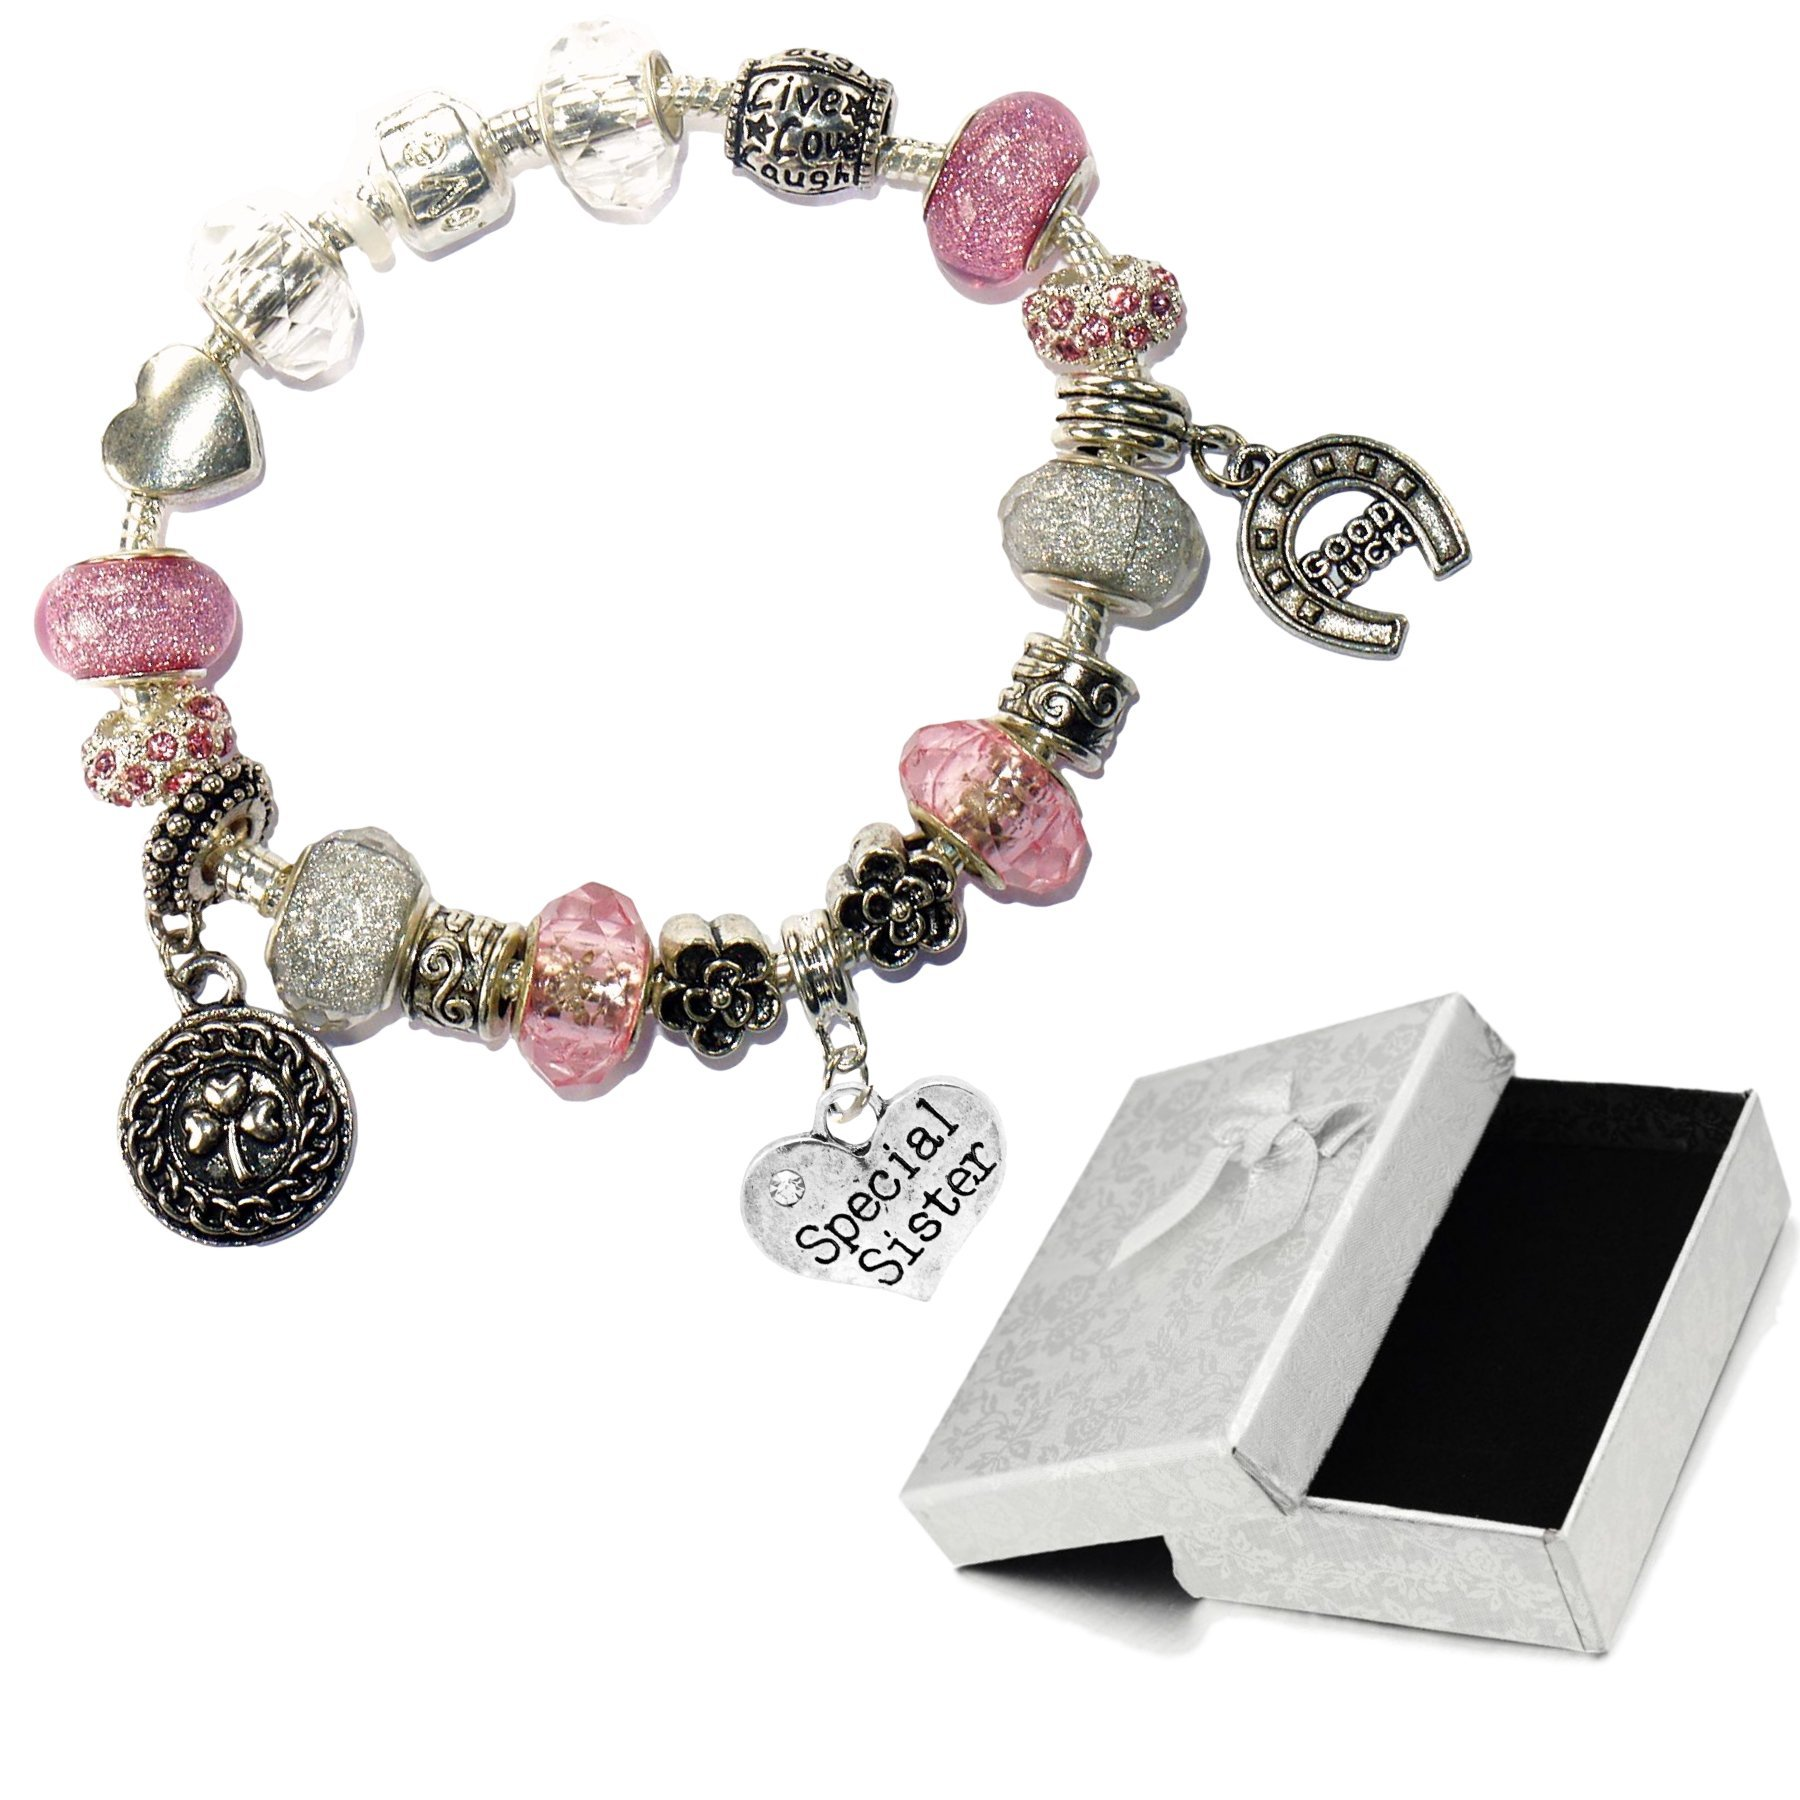 Charm Buddy Special Sister Pink Silver Crystal Good Luck Pandora Style Bracelet With Charms Gift Box